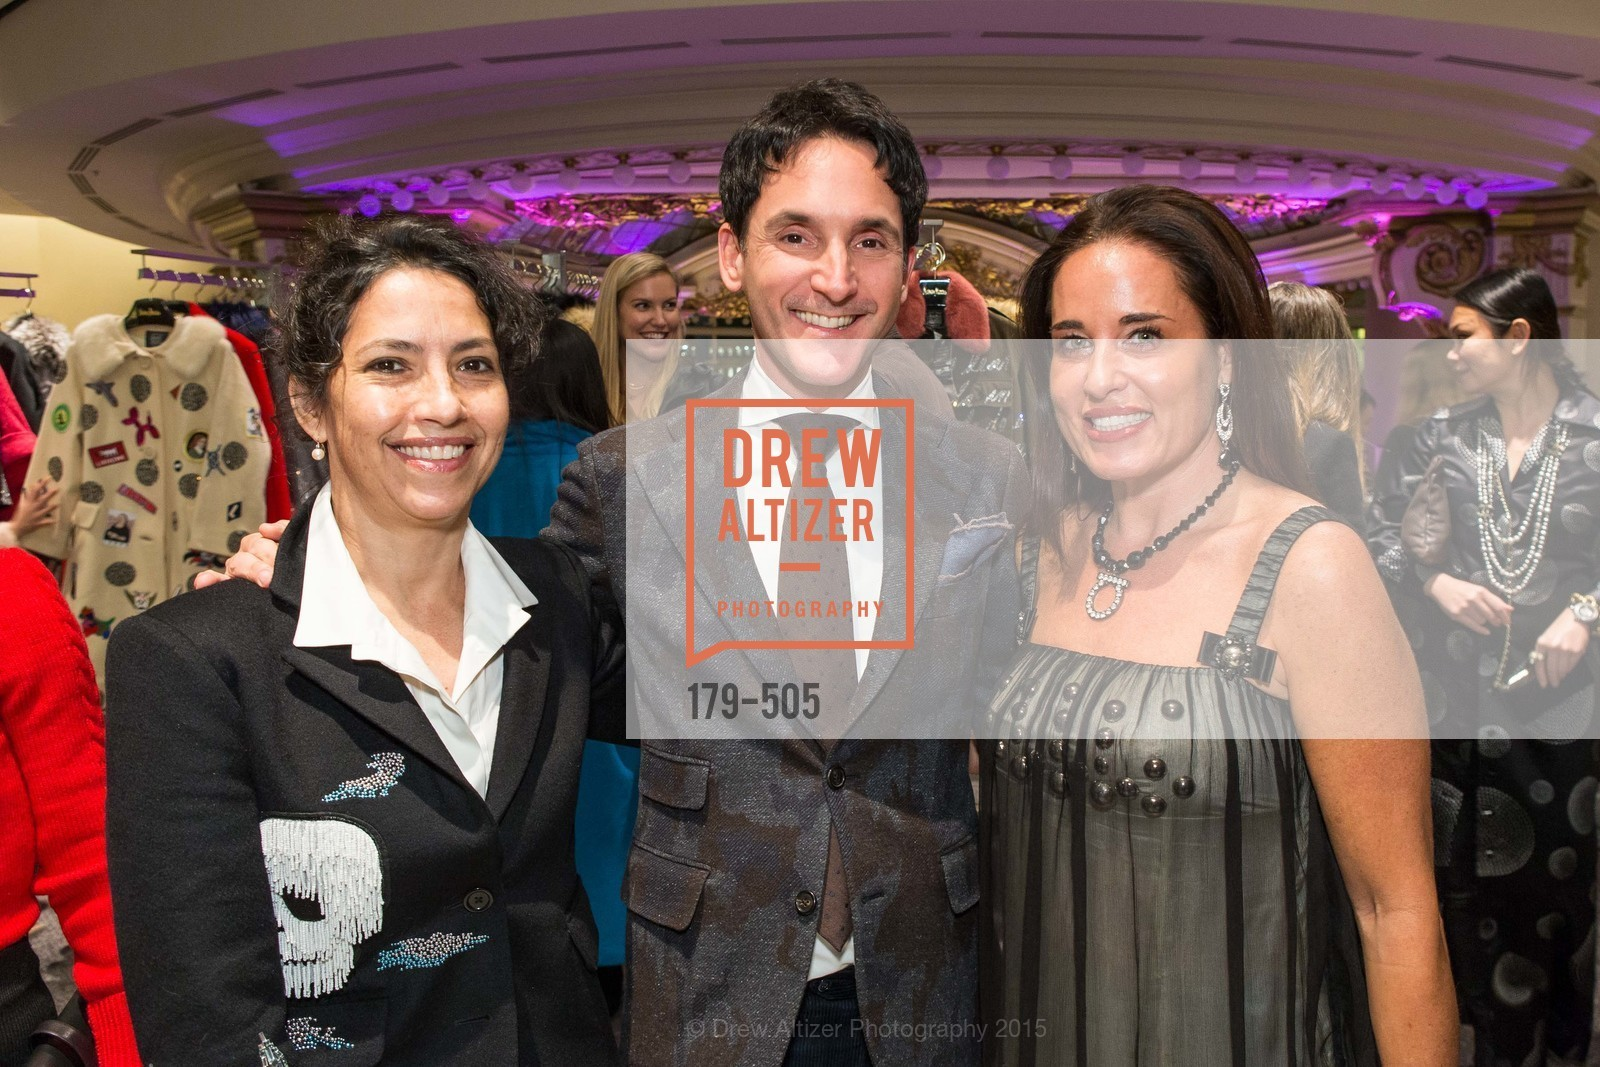 Maya Meux, James Krohn, Natalia Urrutia, Libertine Cocktail Party at Neiman Marcus, Neiman Marcus, November 10th, 2015,Drew Altizer, Drew Altizer Photography, full-service agency, private events, San Francisco photographer, photographer california